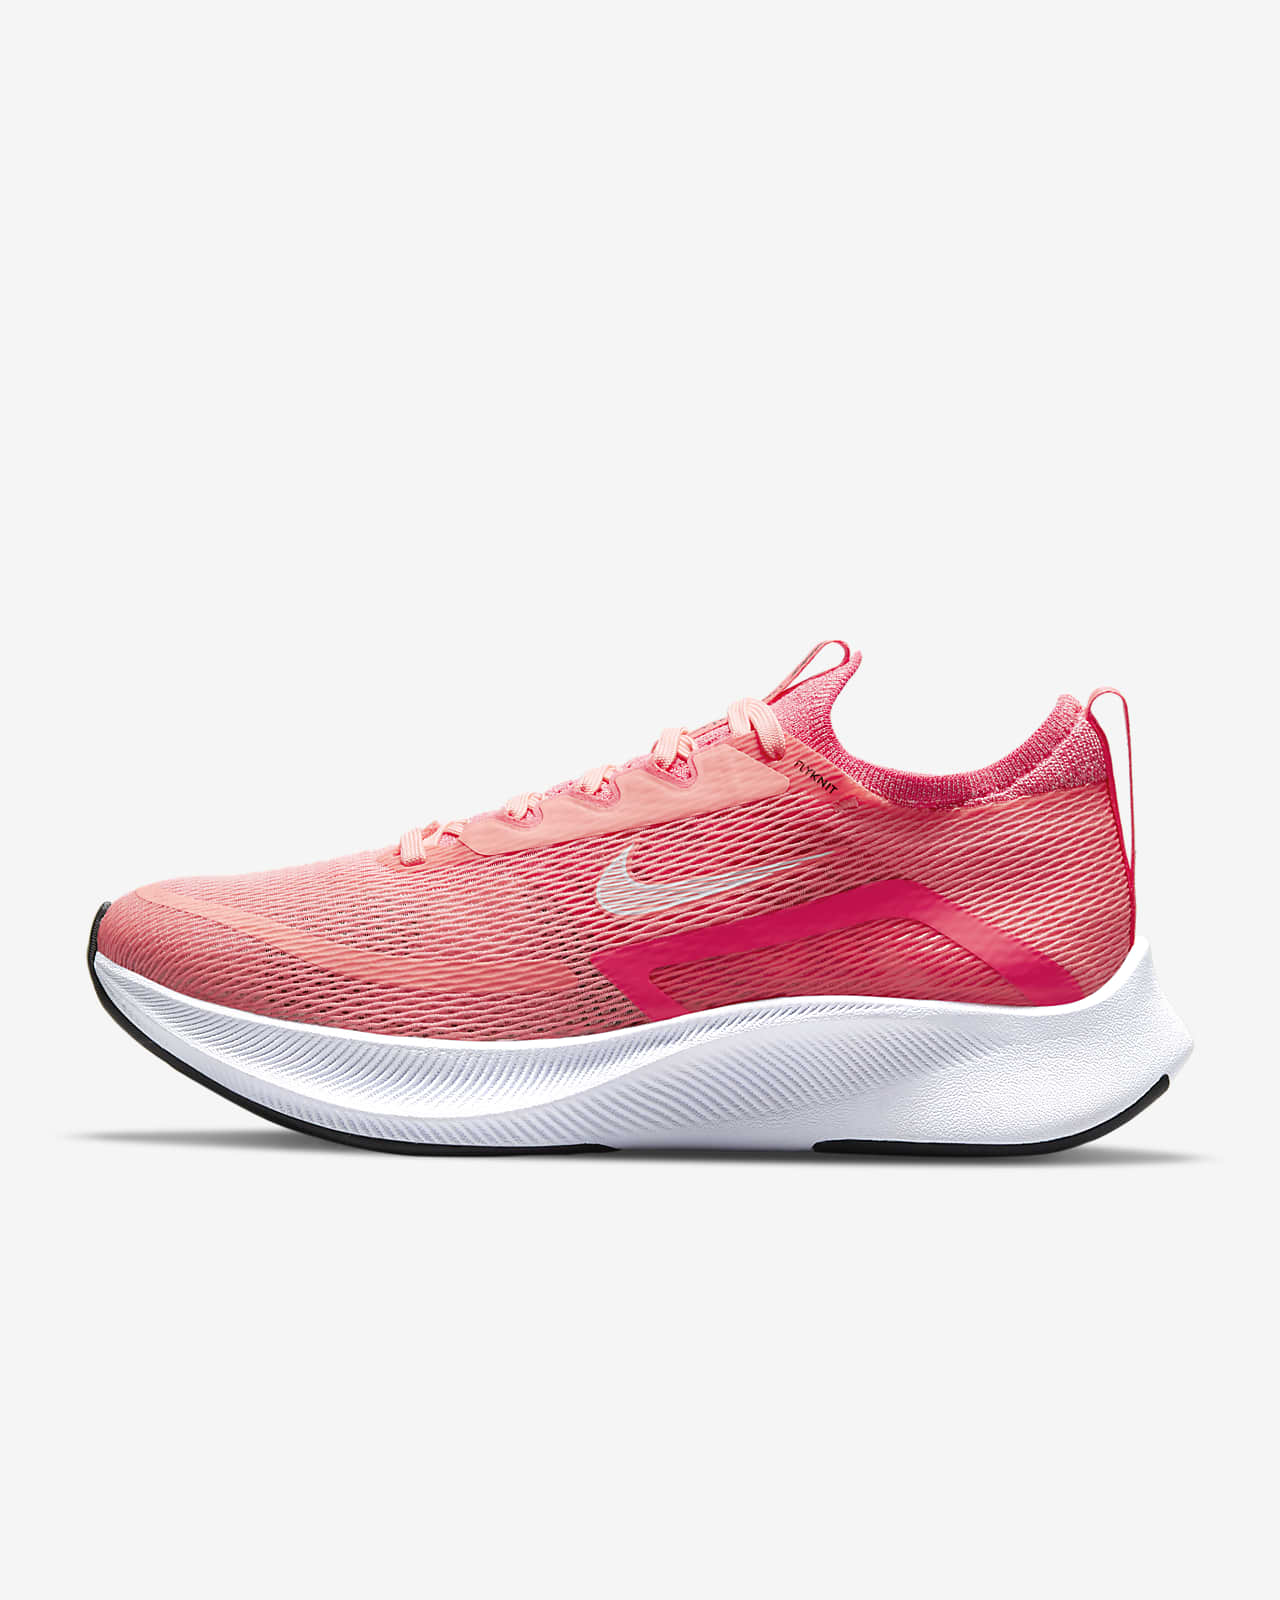 Nike Zoom Fly 4 Women's Road Running Shoes